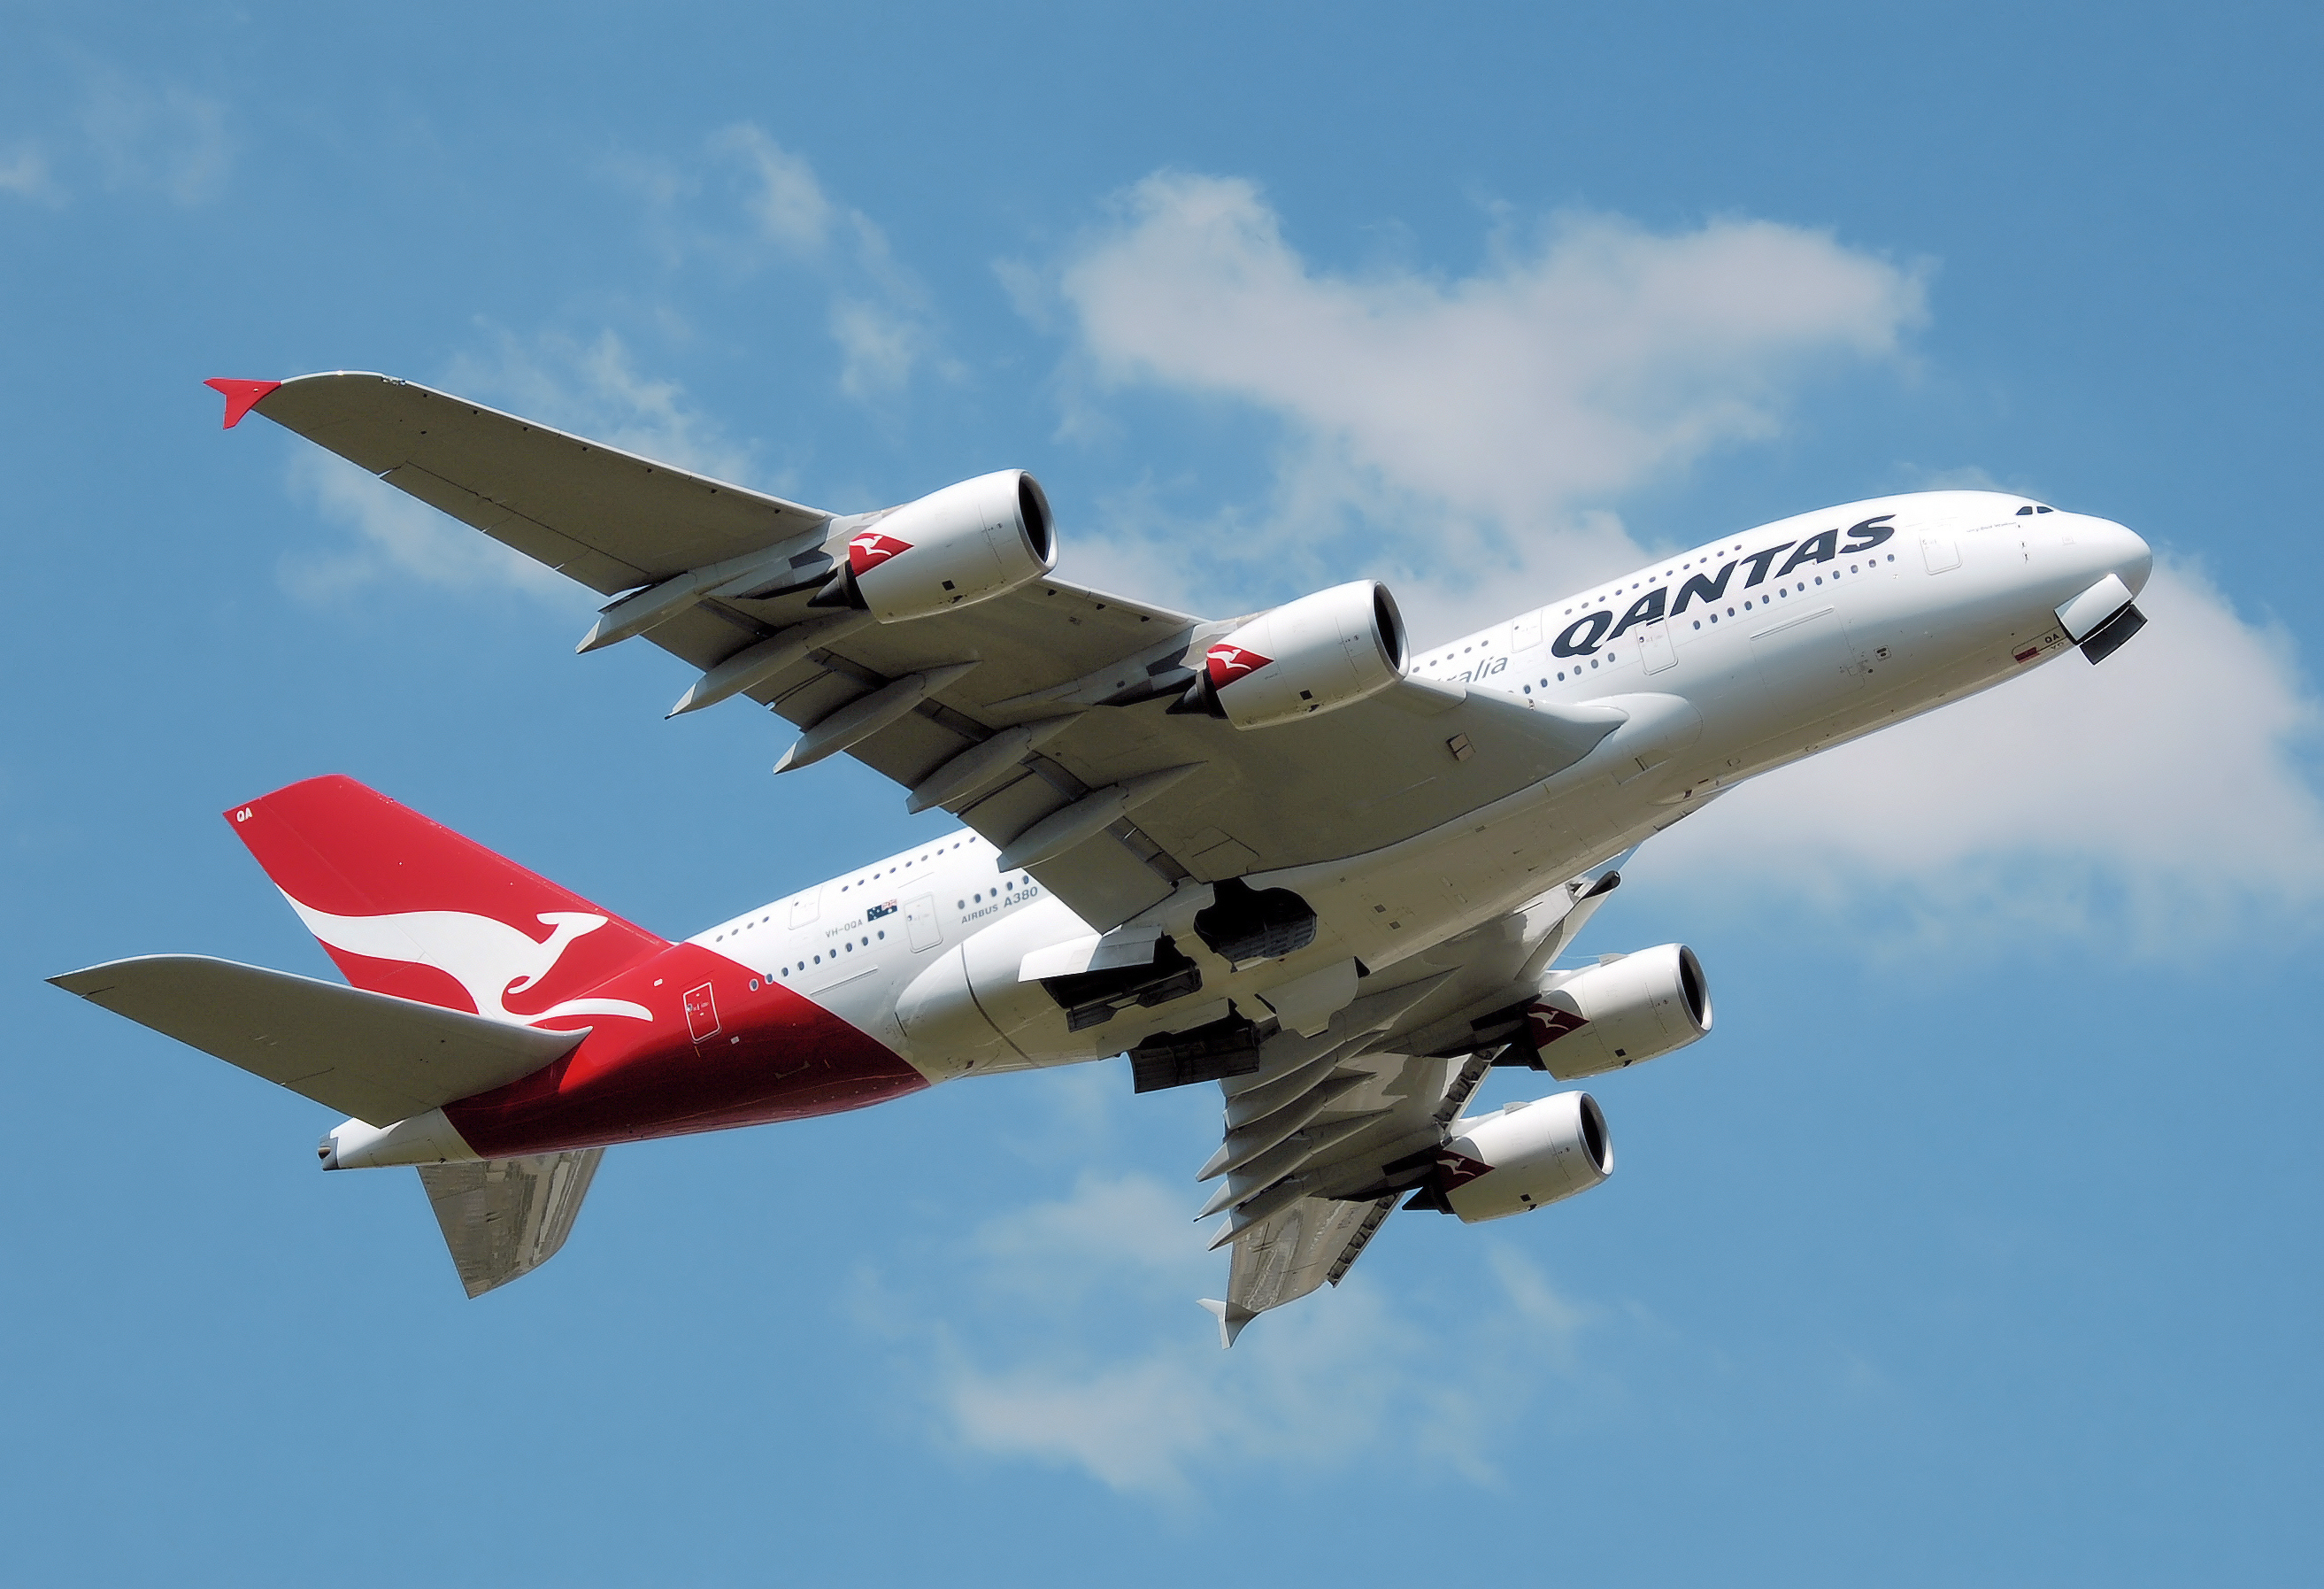 Description Qantas a380 vh-oqa takeoff heathrow arp.jpg